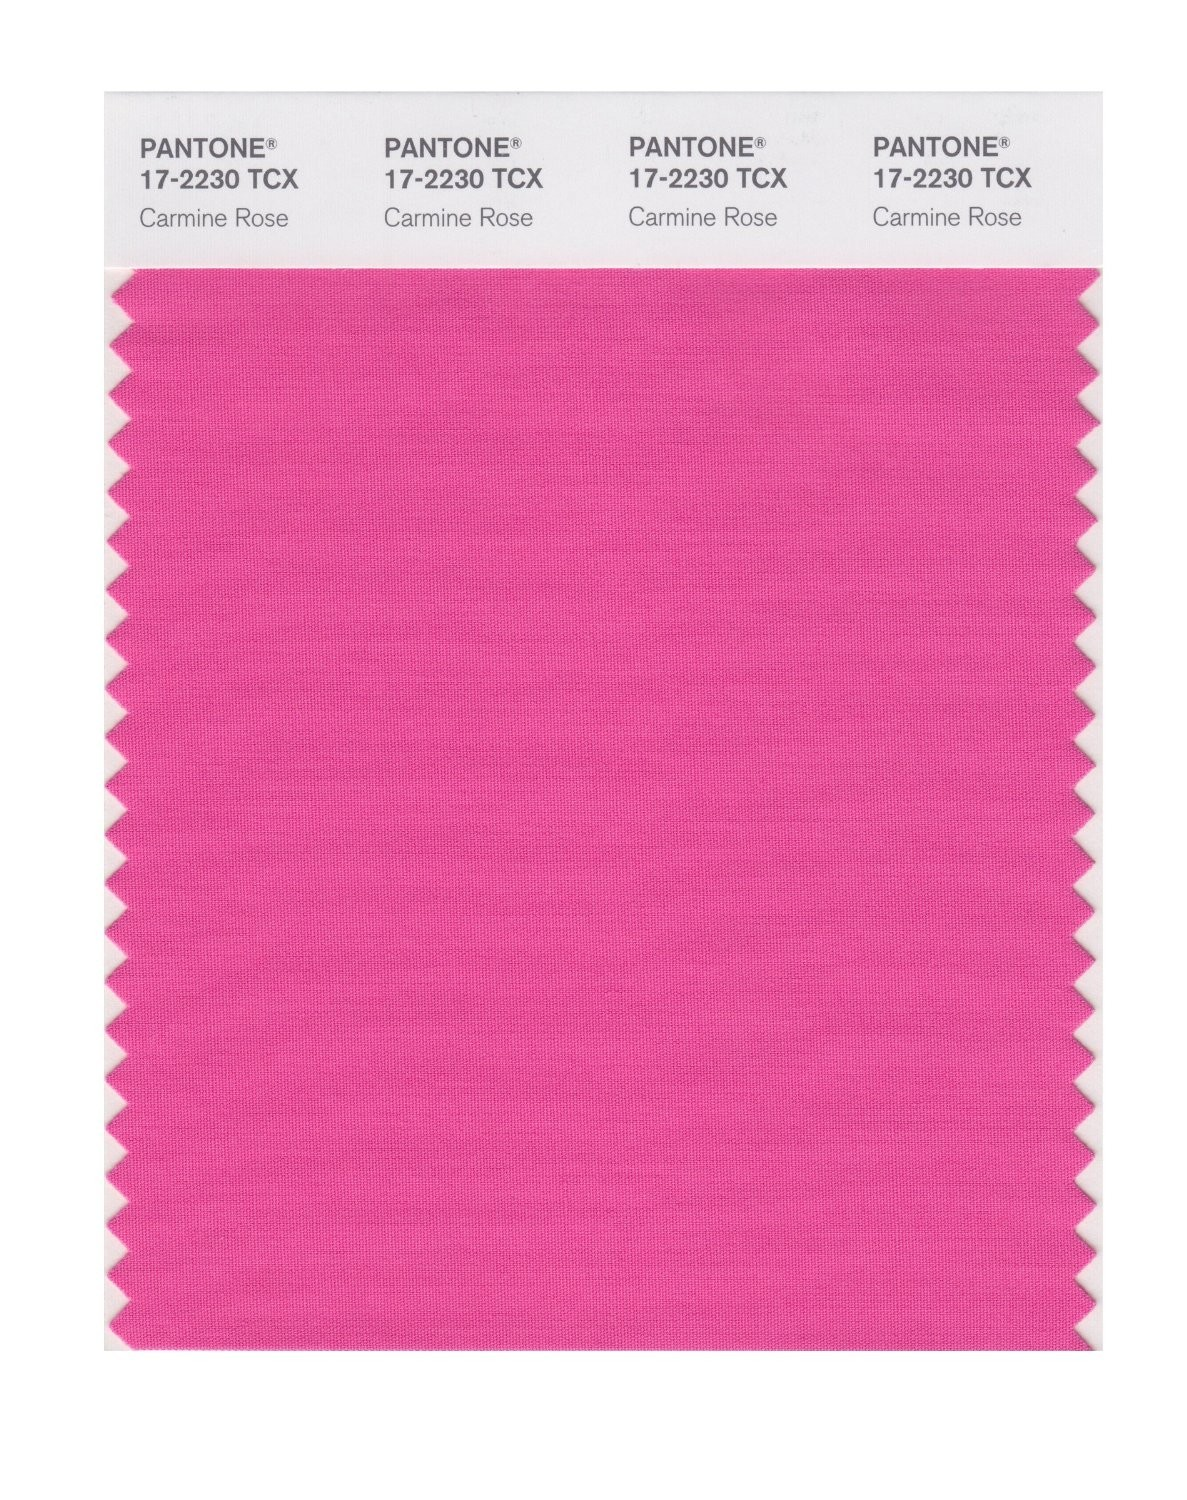 Pantone 17-2230 TCX Swatch Card Carmine Rose